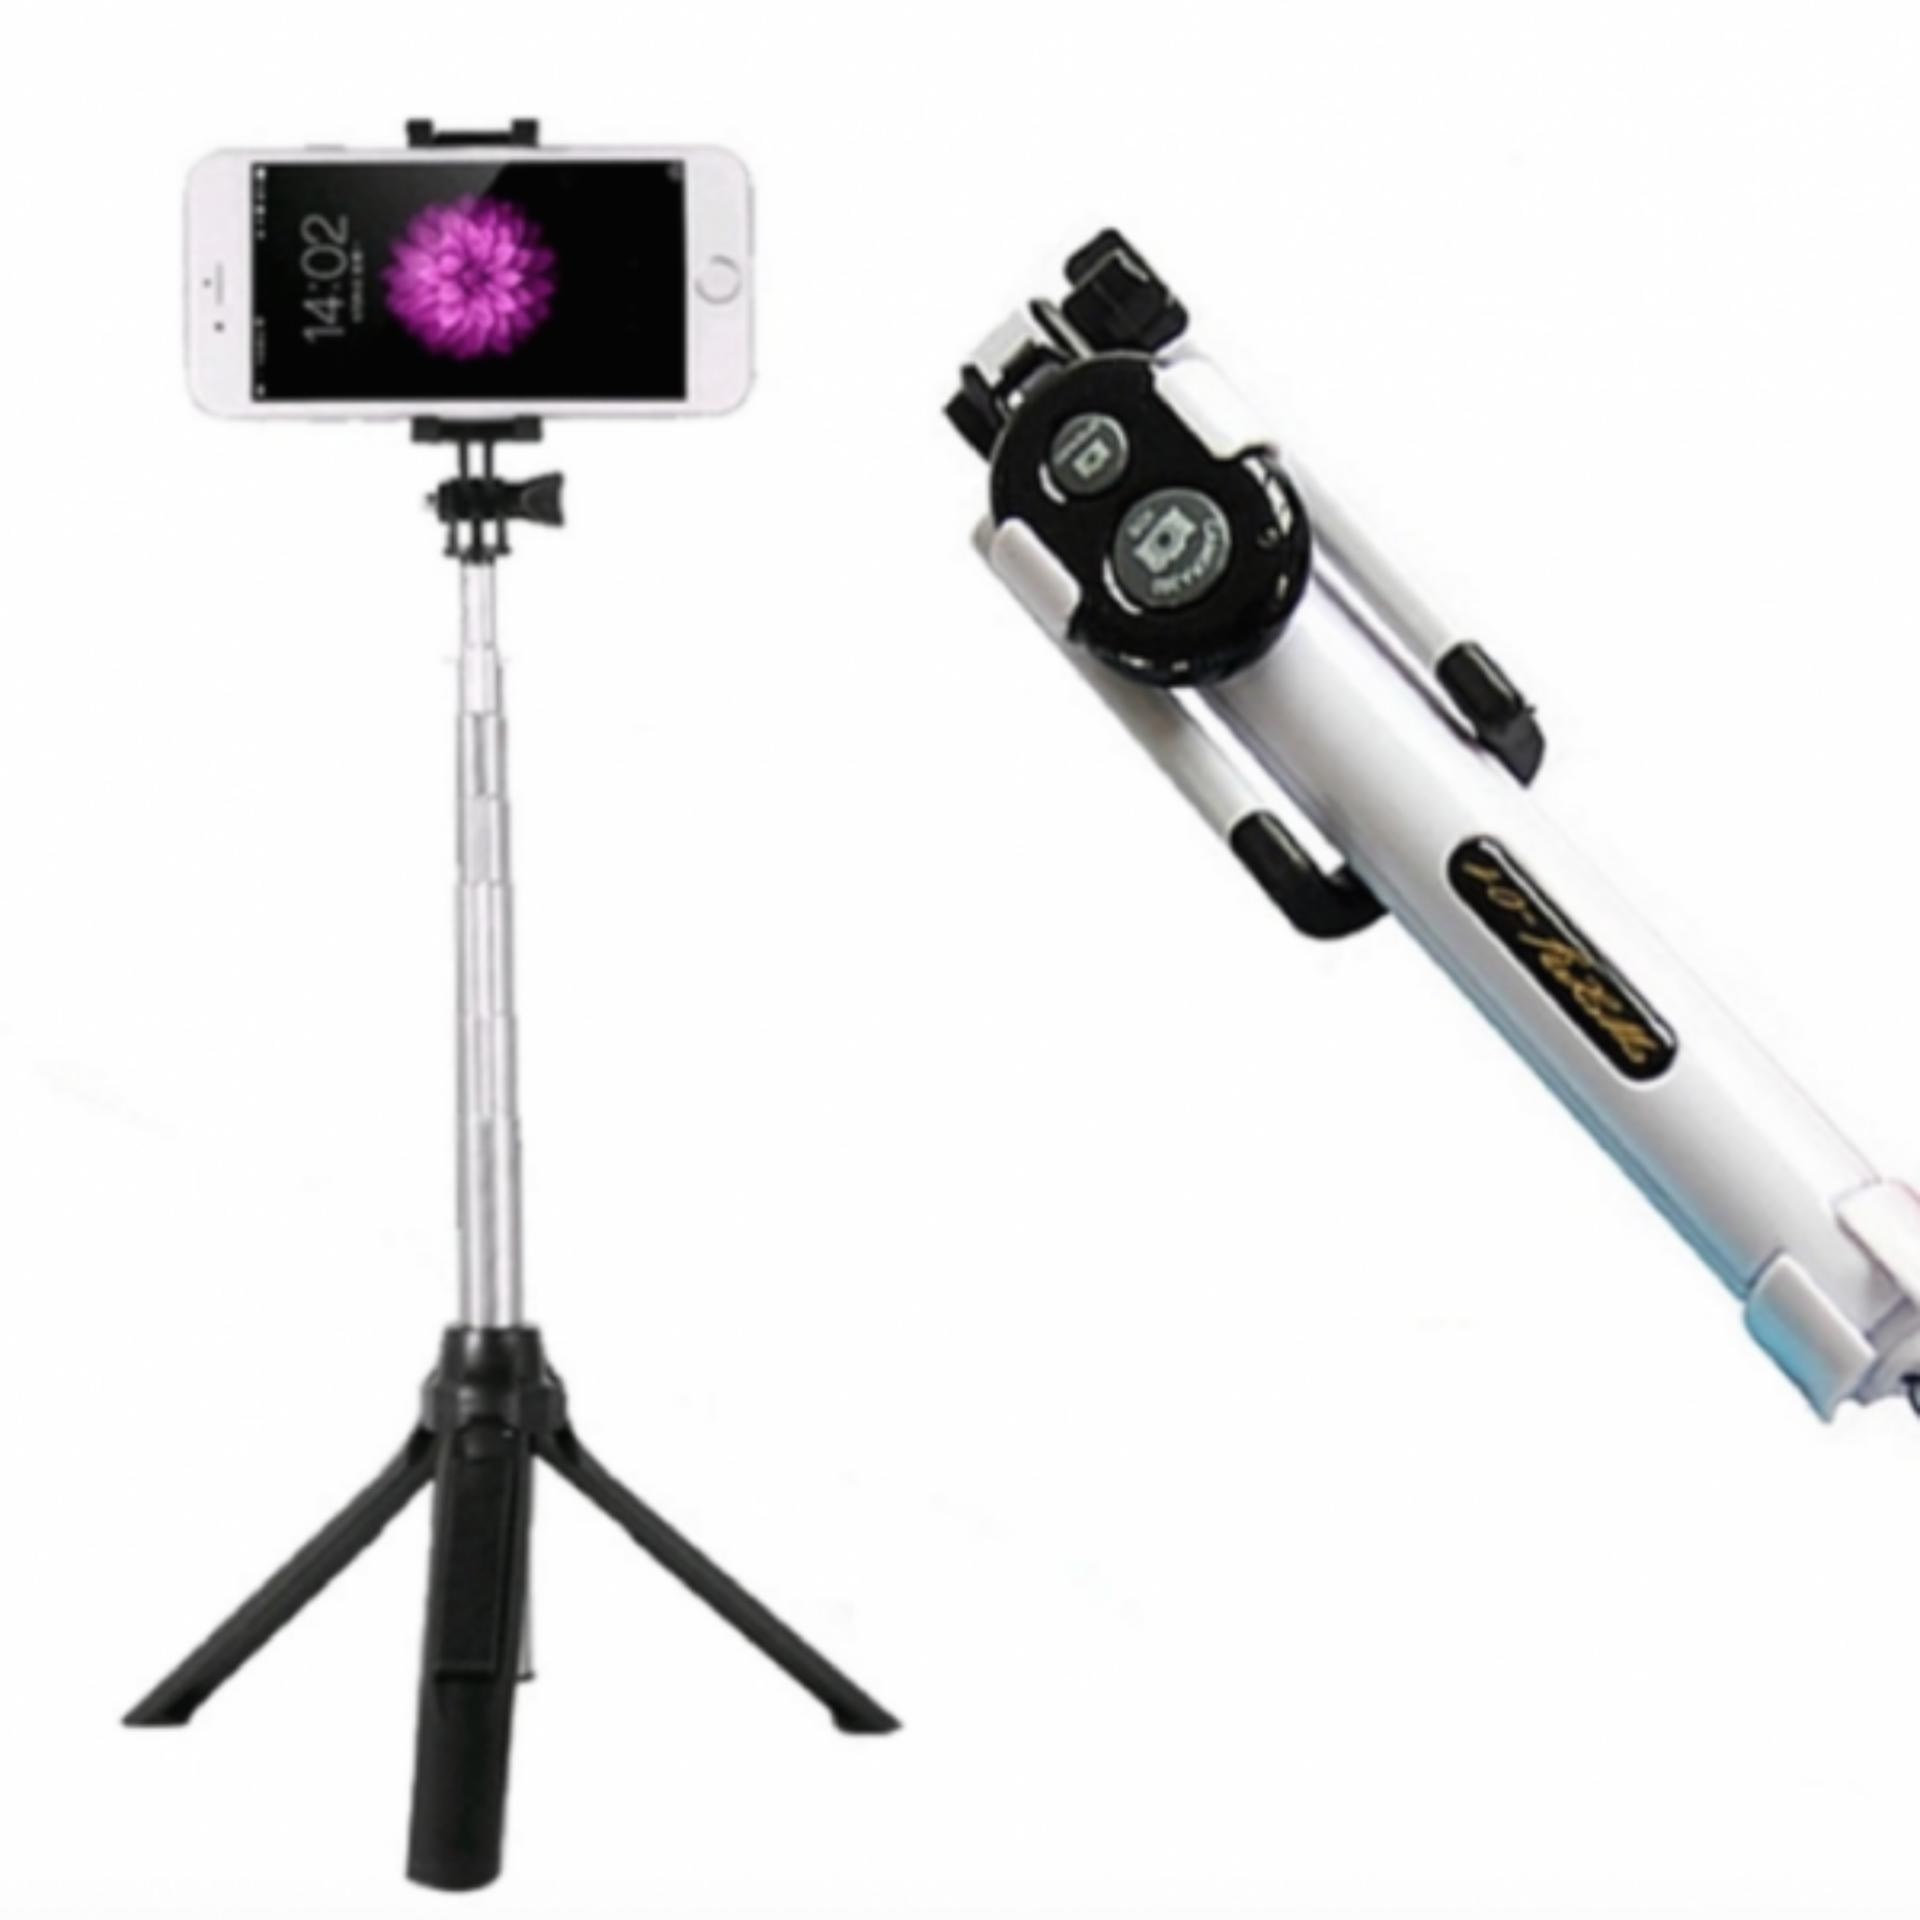 Tongsis 15cm 3 in 1 Built in Bluetooth Selfie Stick Monopod Tripod for Iphone Smartphone .